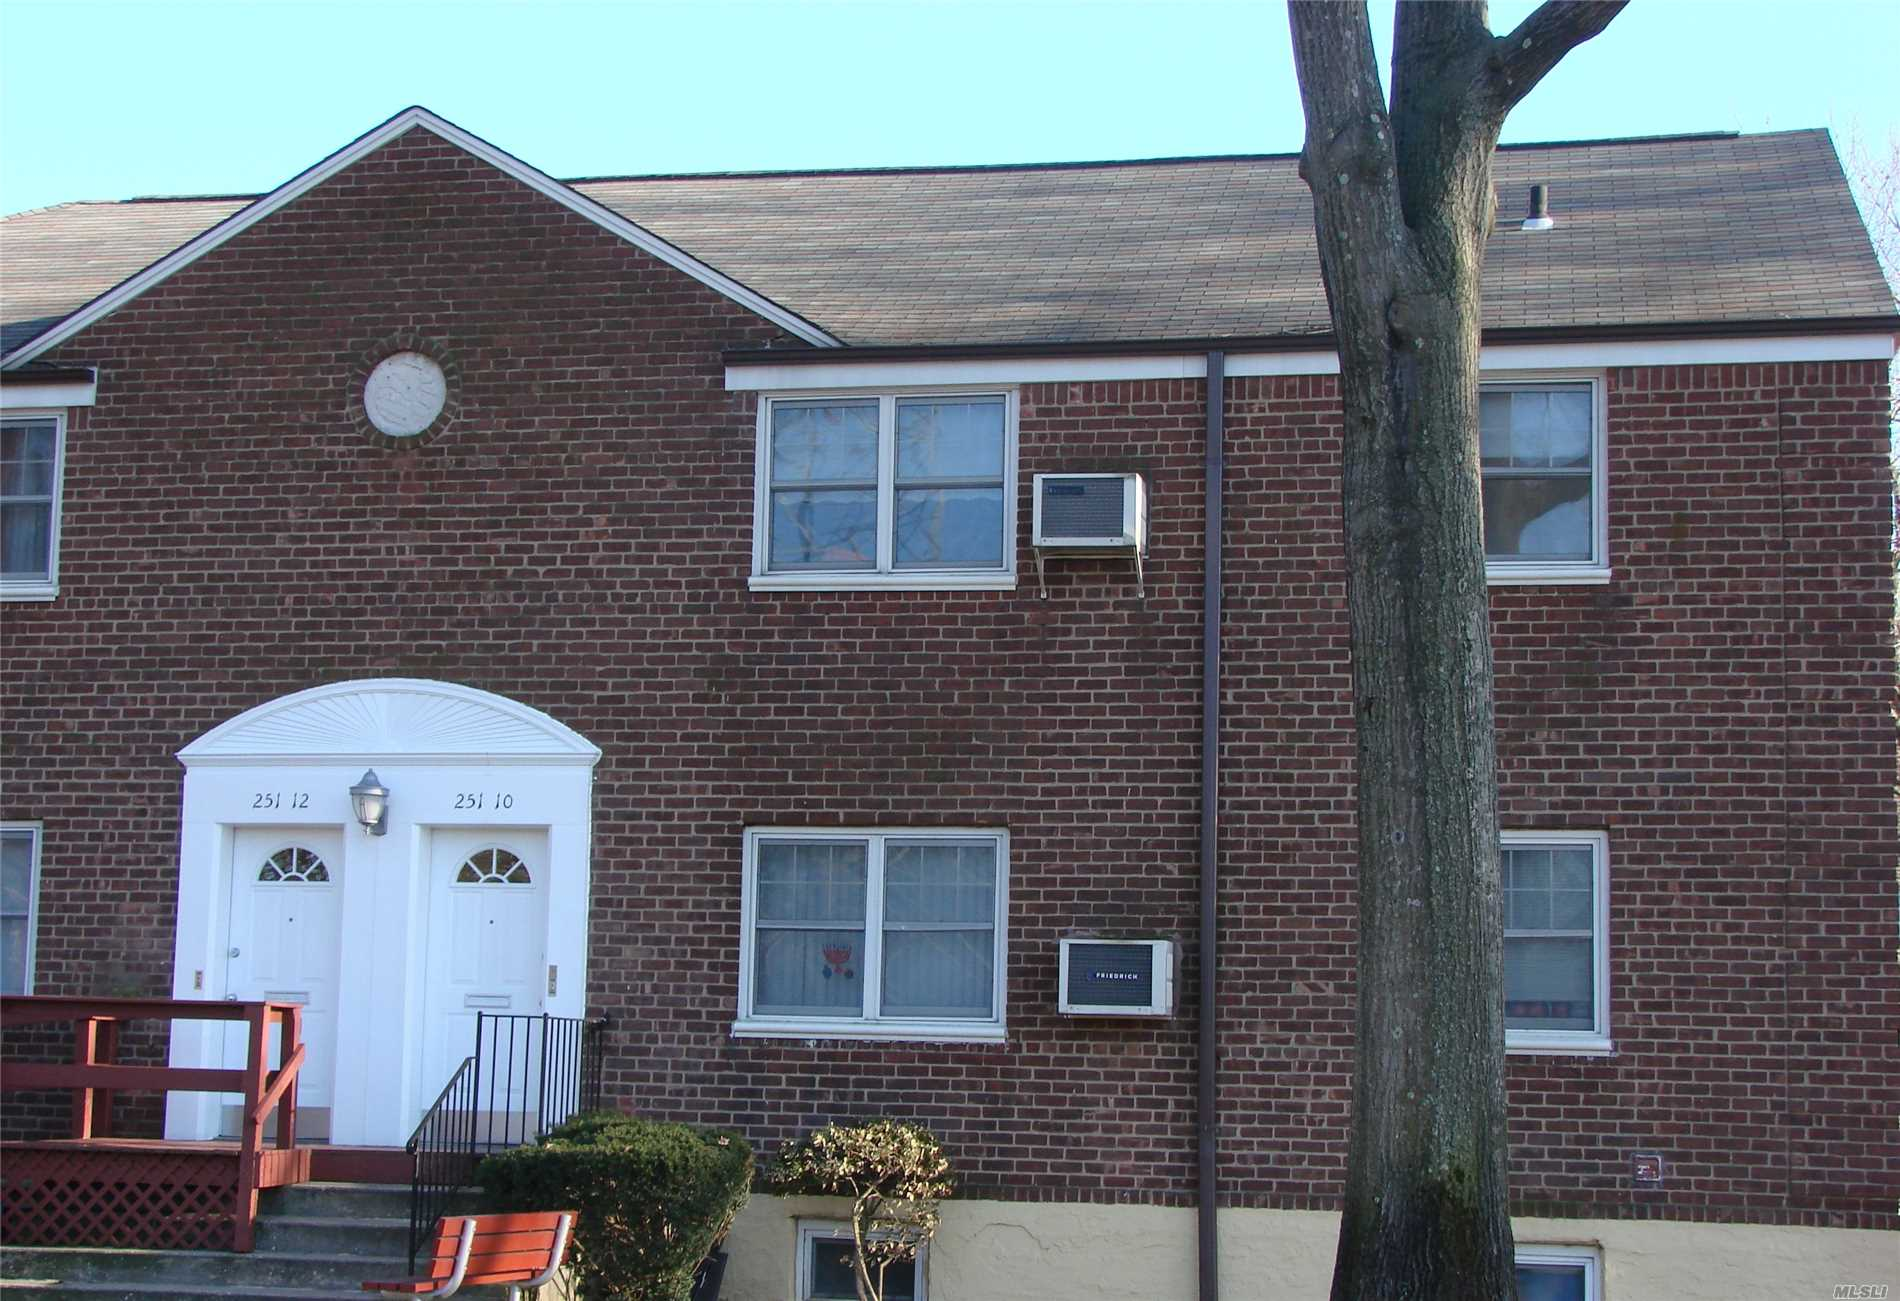 Spacious two bedroom upper unit, with dining room off kitchen. Unit requires updating. There are limited upper units available, pull down attic storage. Great location! Easy access to parkways, hospitals and shopping. Quiet, residential neighborhood.